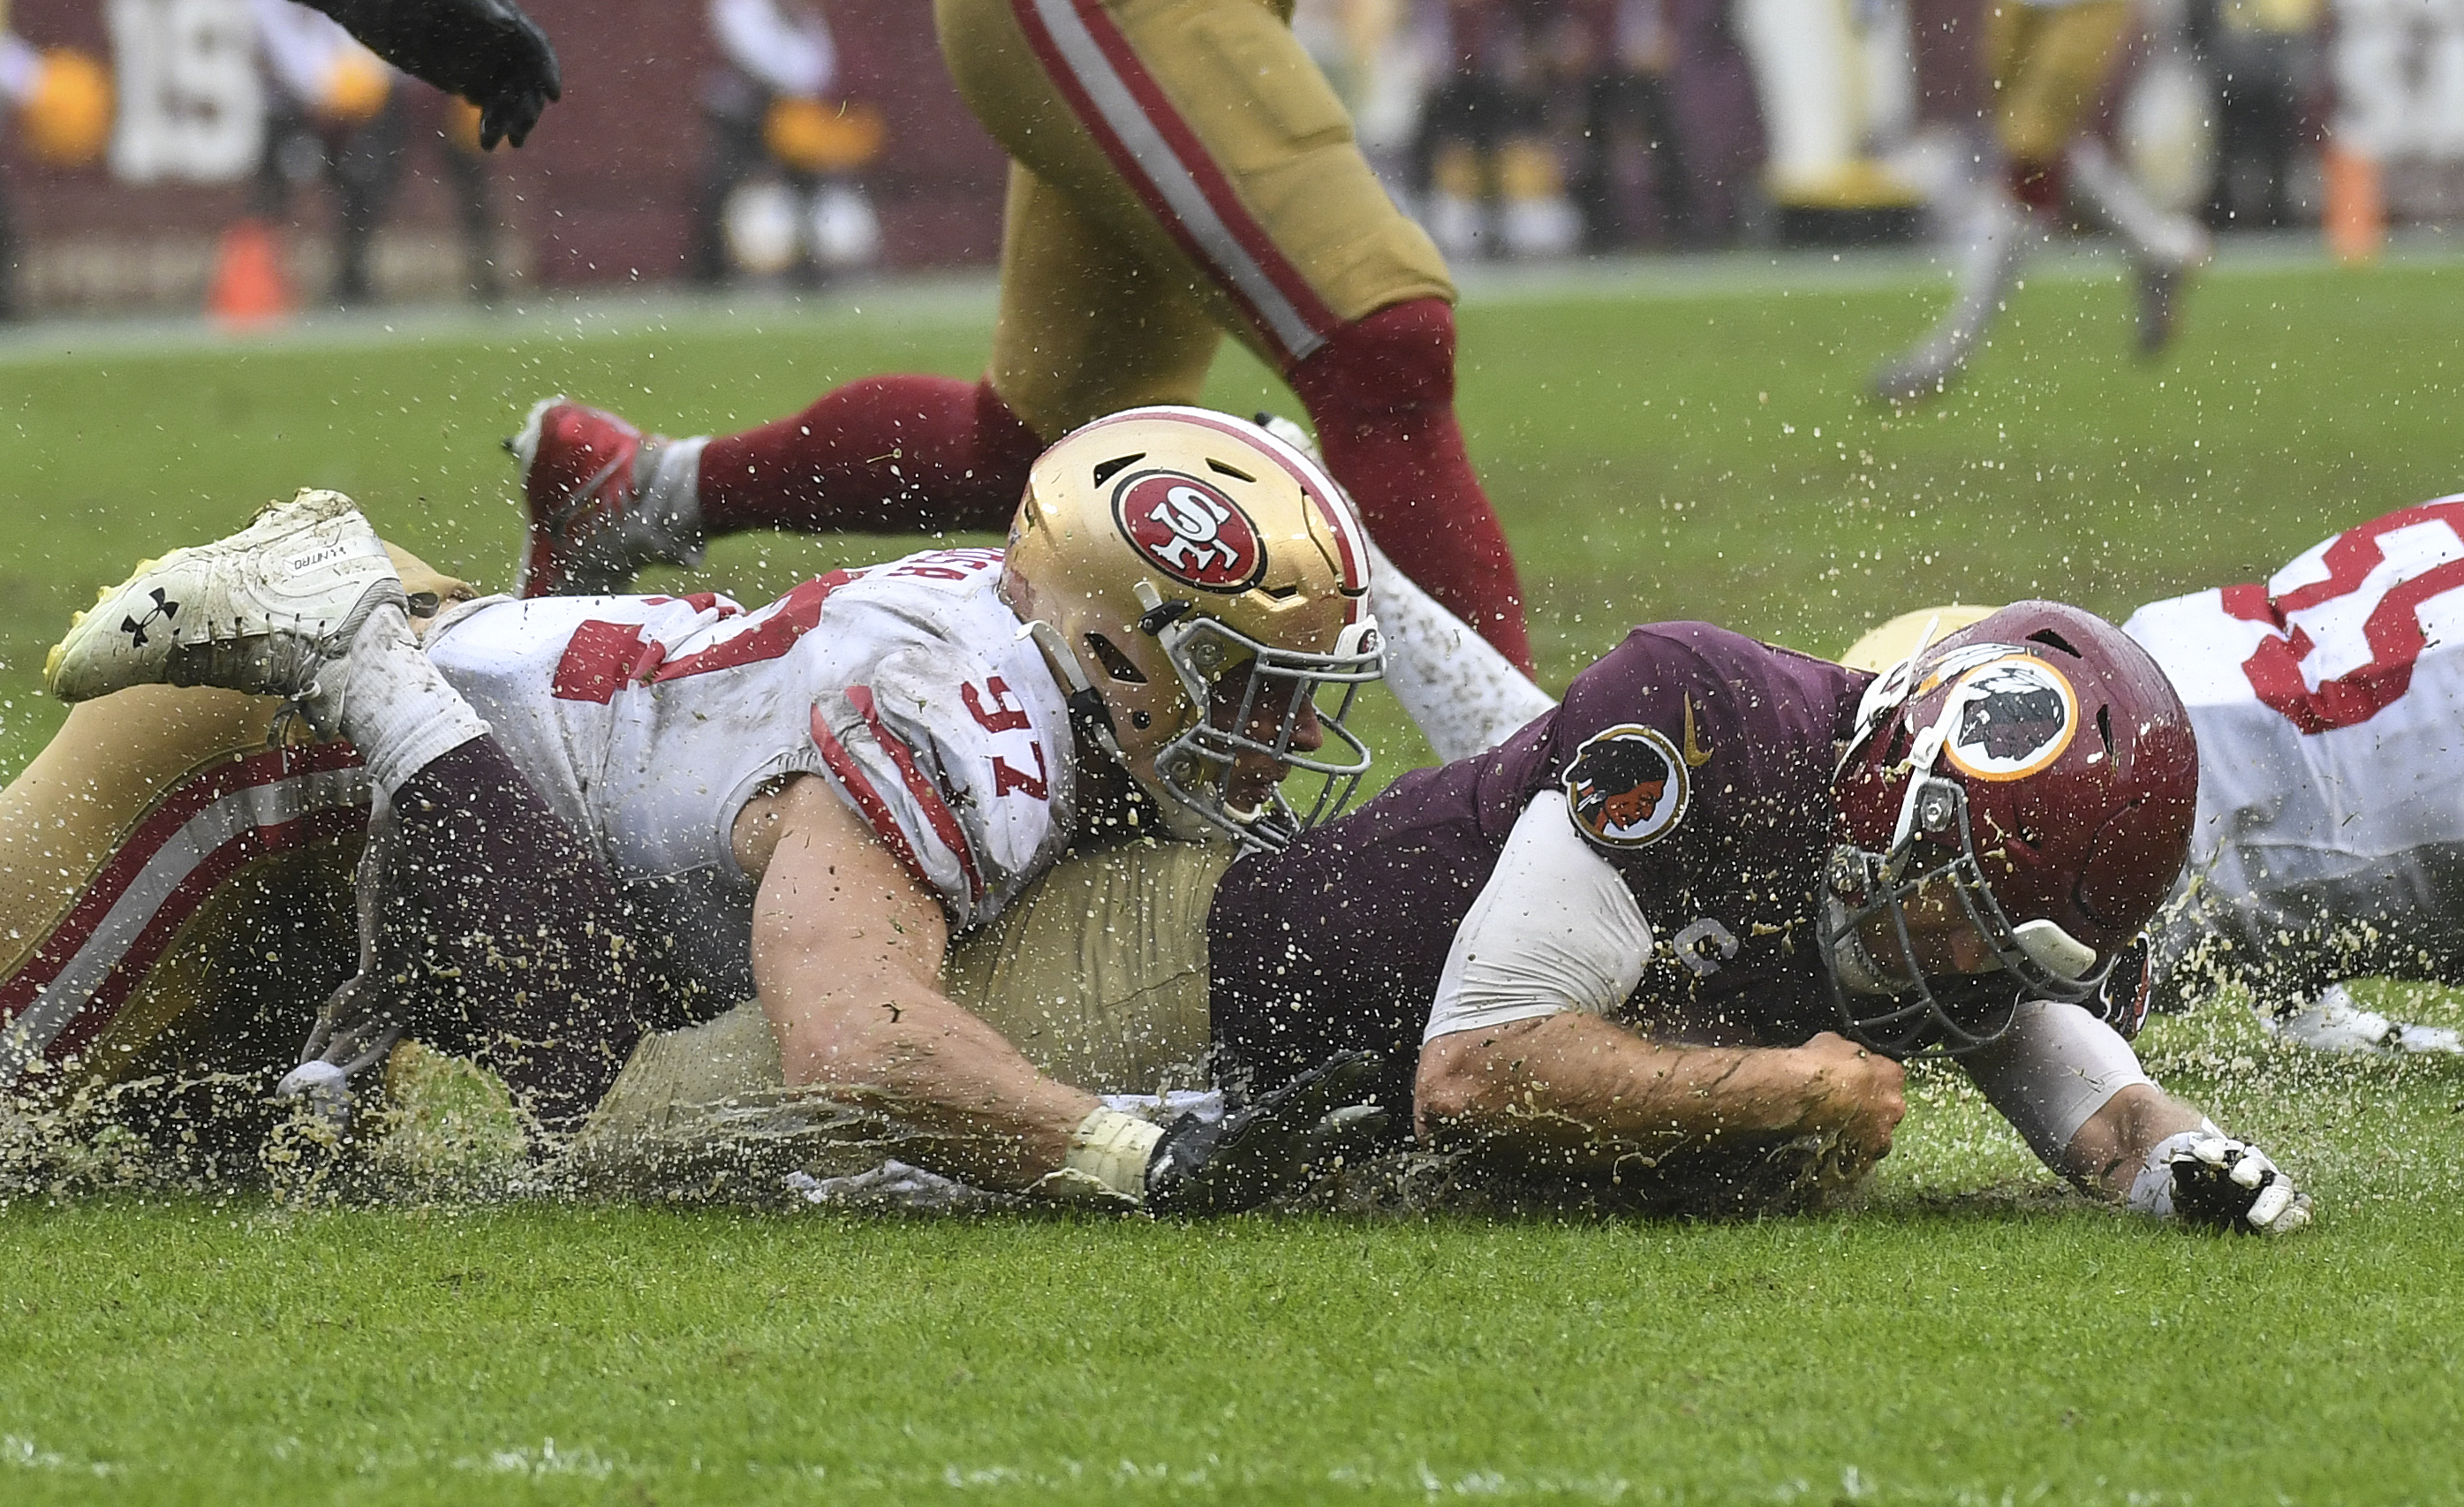 Redskins lose to 49ers, 9-0, in a sloppy, rain-soaked game - The Washington  Post